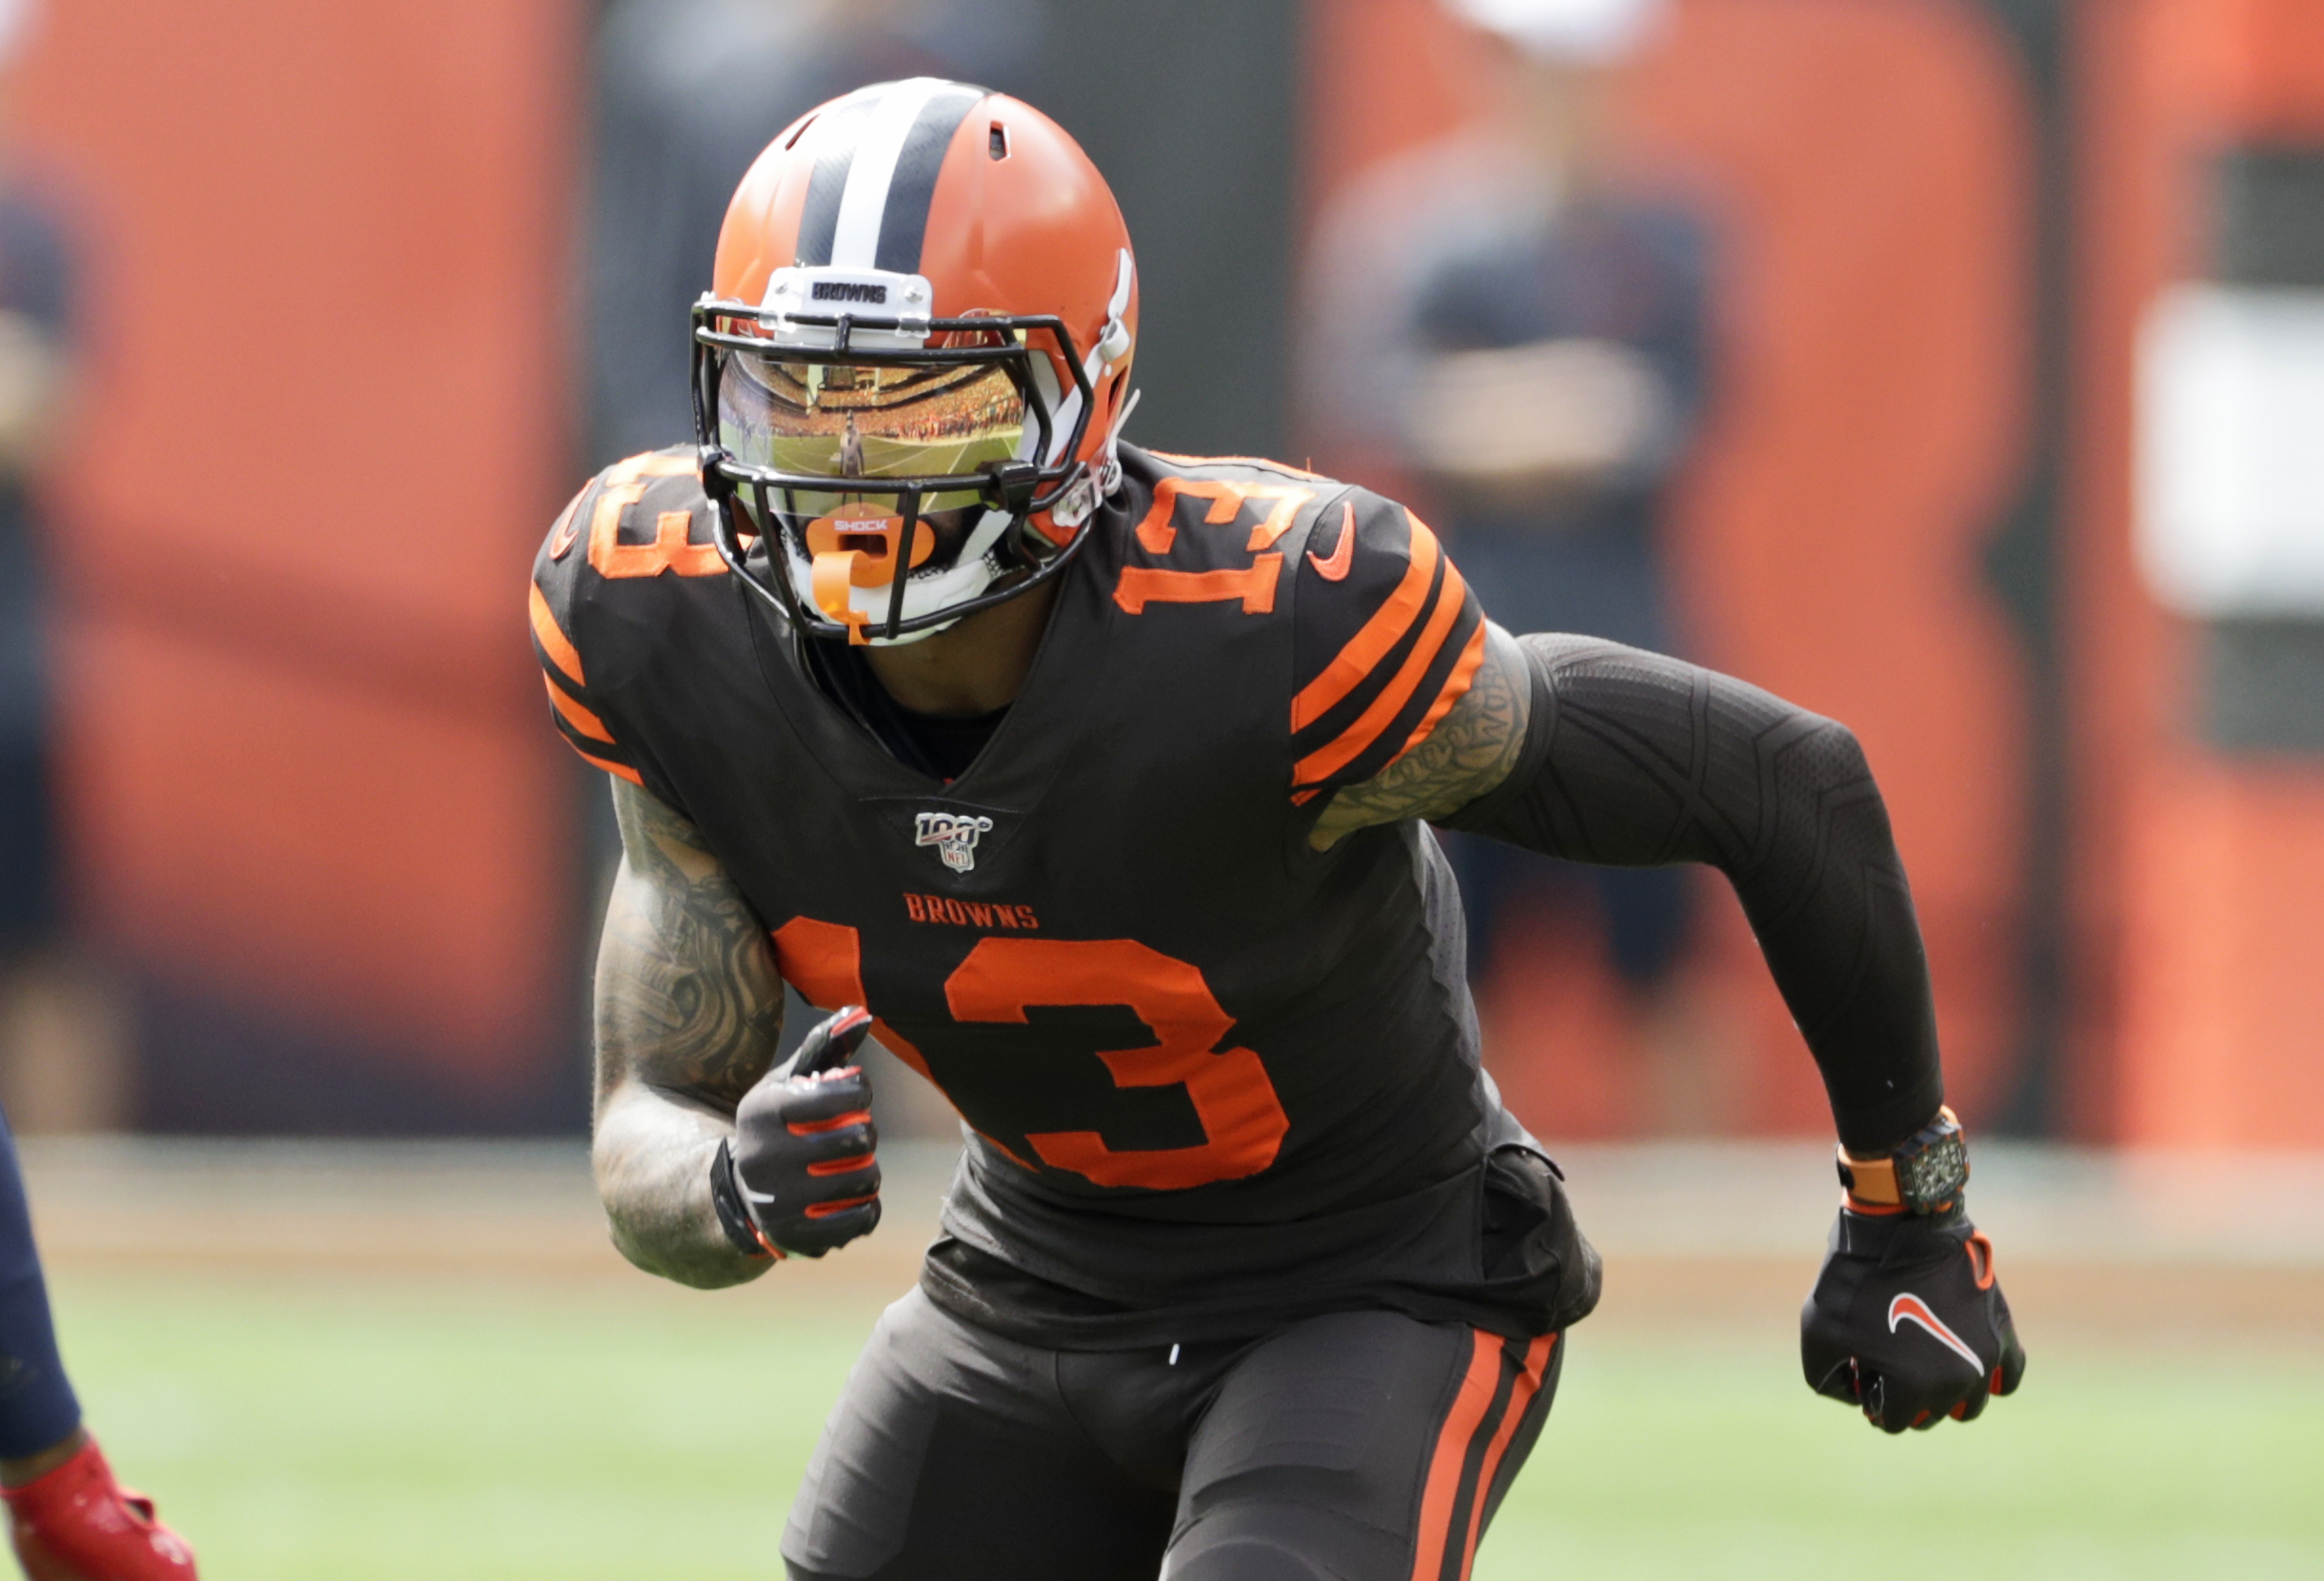 Cleveland Browns vs. New York Jets Live Stream: How to watch Baker Mayfield, Odell Beckham, OBJ on Monday Night Football online | Time, TV, channel, line, over/under